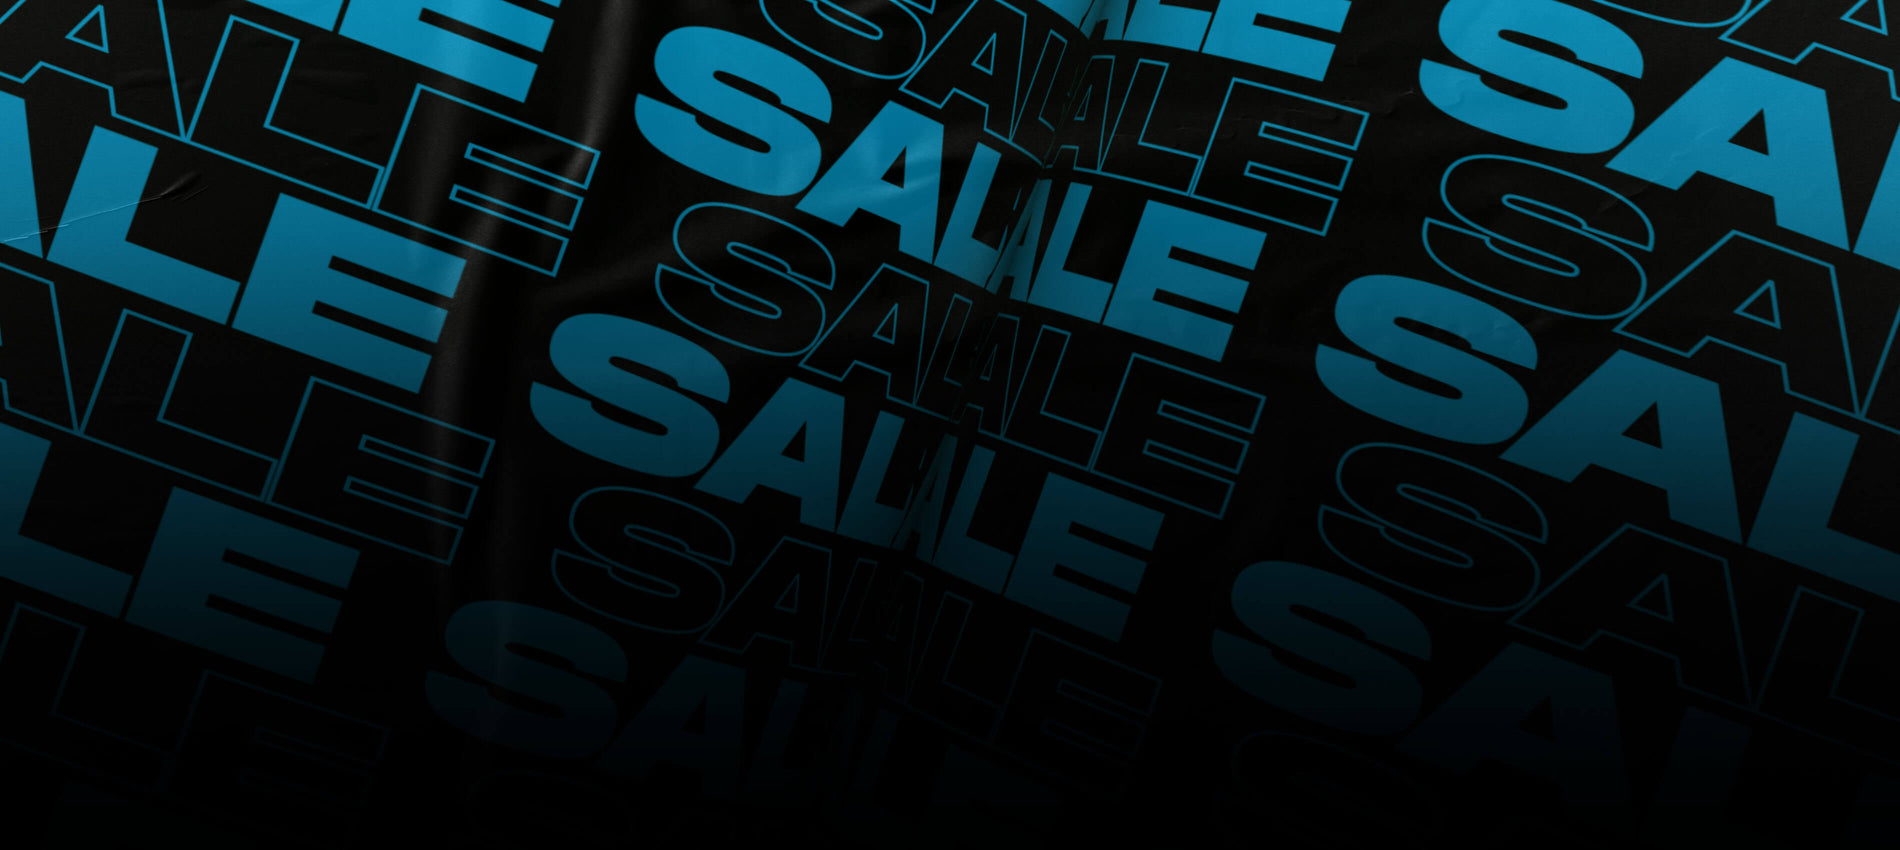 A generic sale banner with repeated text of sale. Black background with blue text.